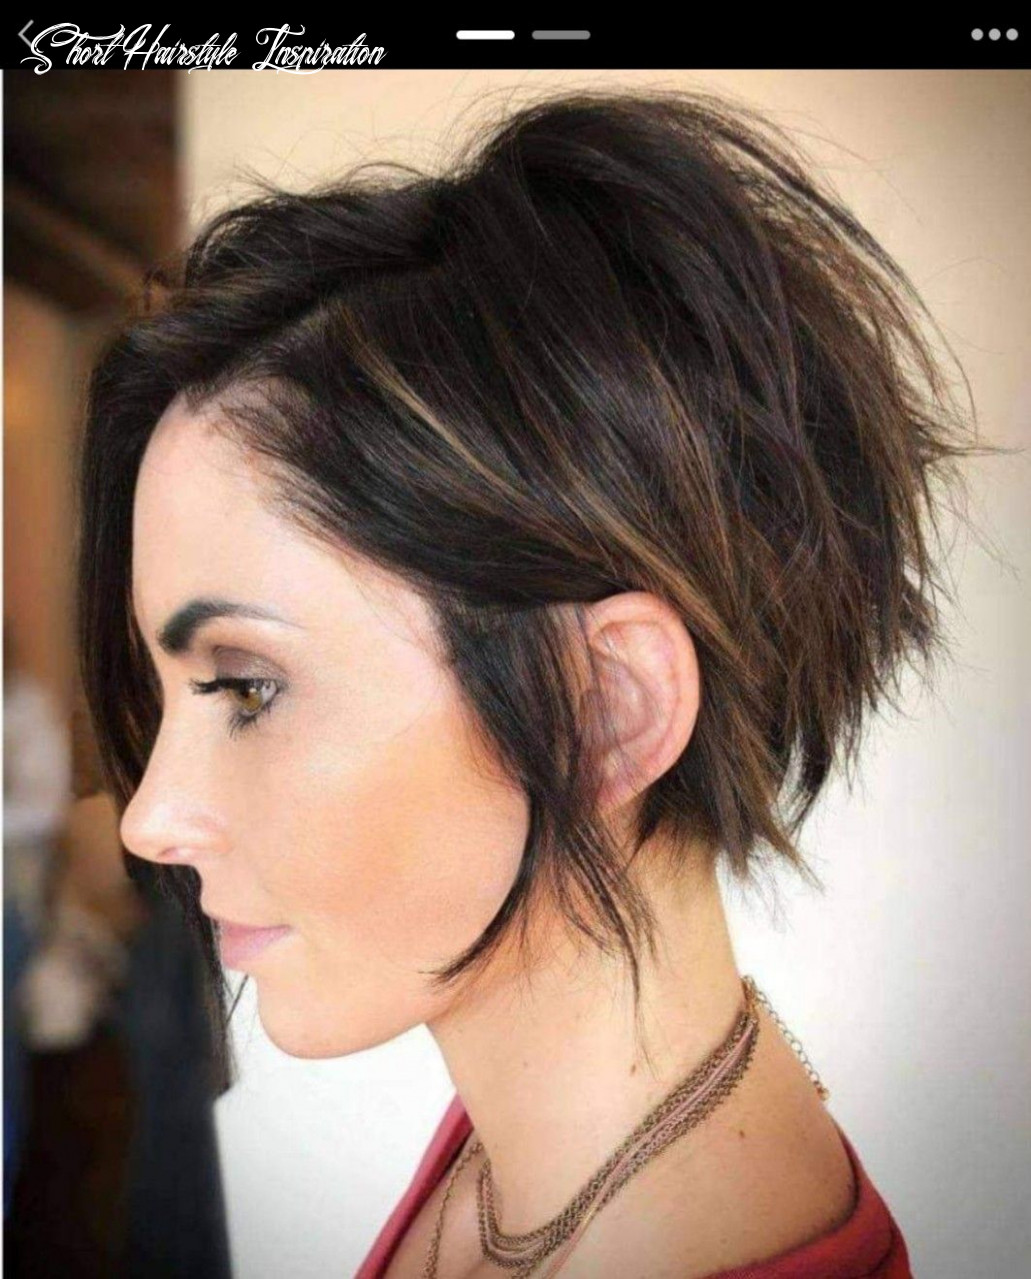 Thick hair styles image by vanessa stueber on hair in 8 | pixie